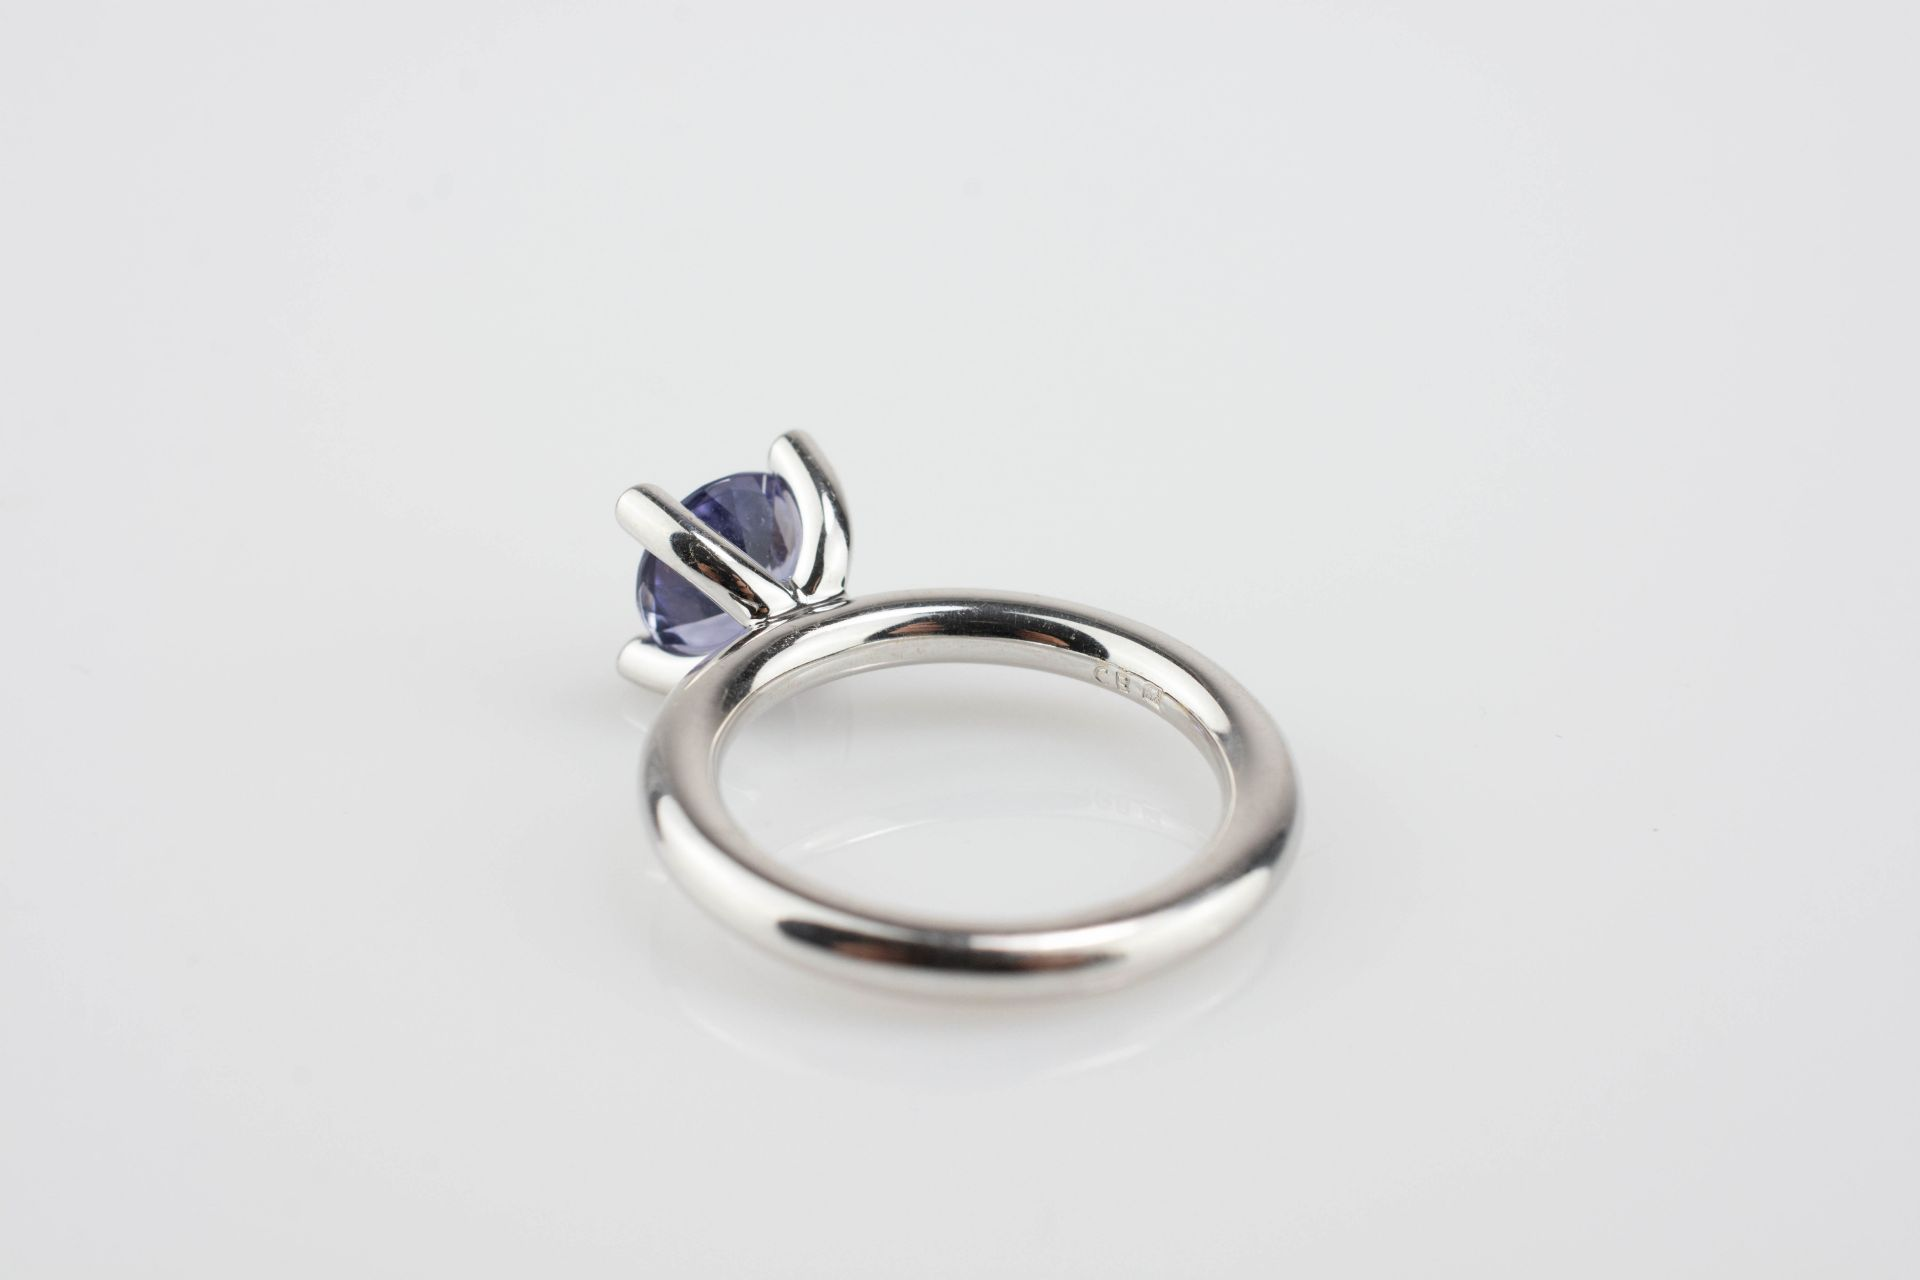 Solitair-Ring mit Iolith - Image 3 of 3